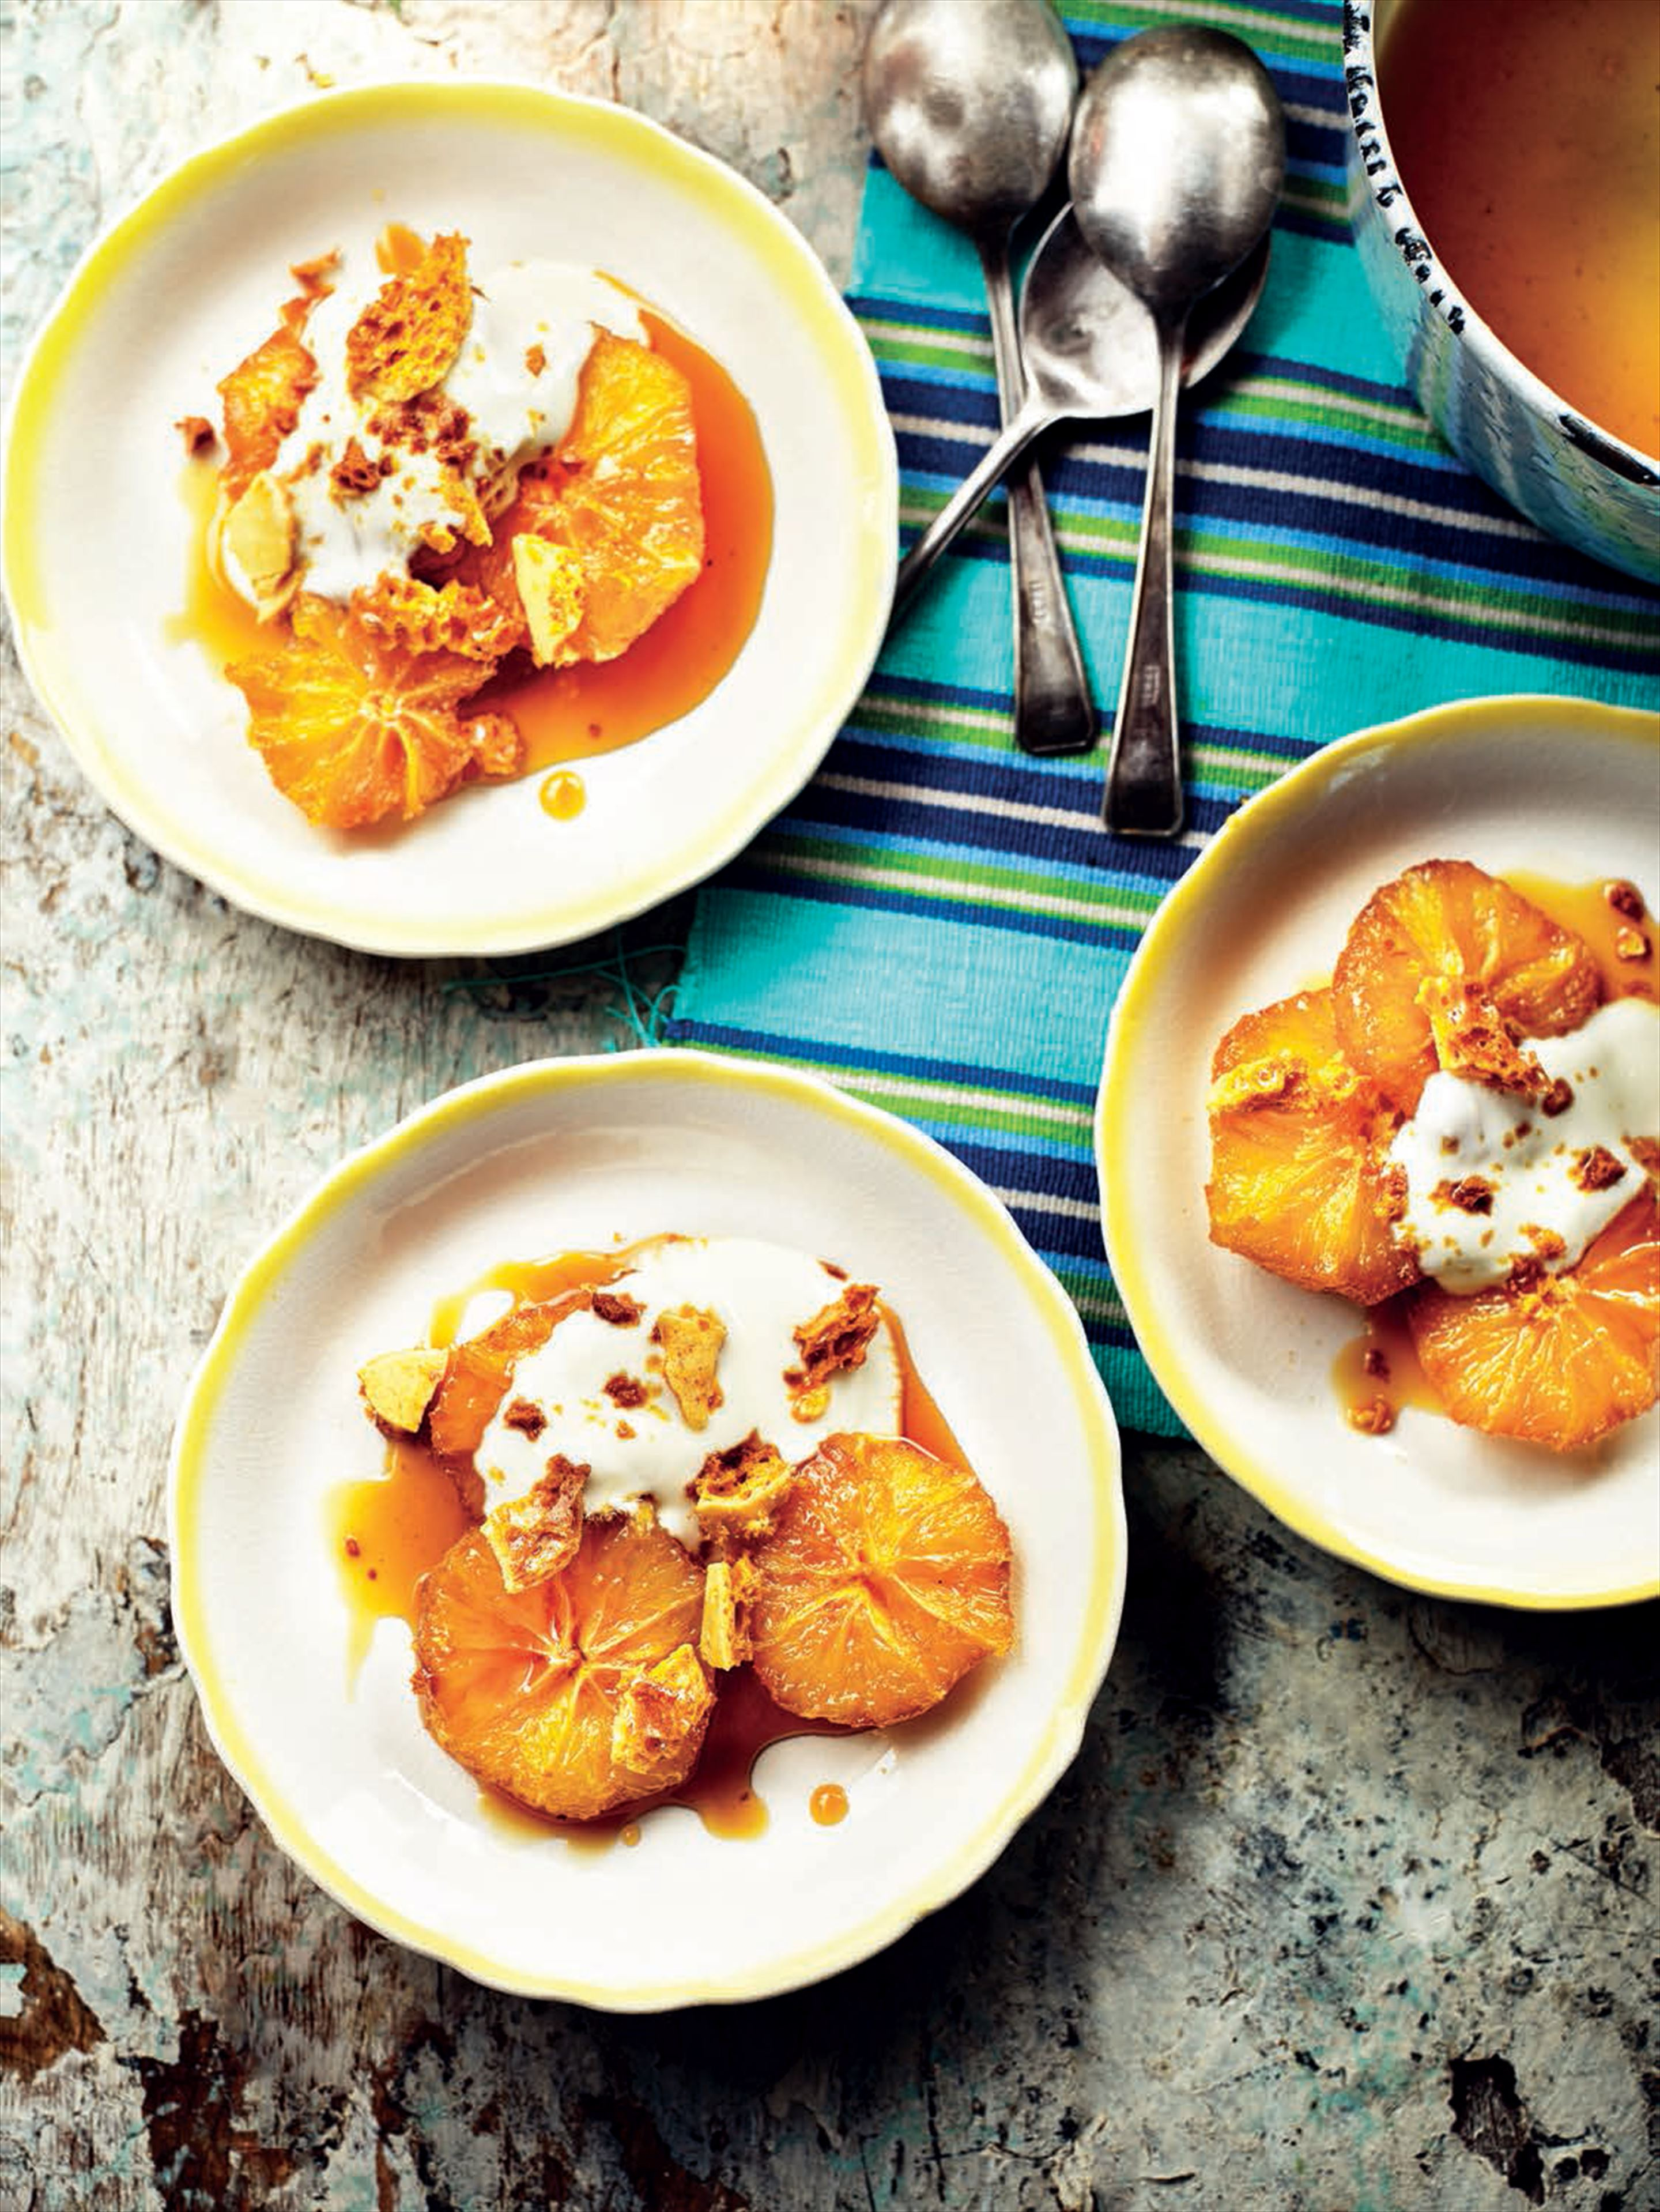 Caramelized oranges with orange flower yogurt and honeycomb